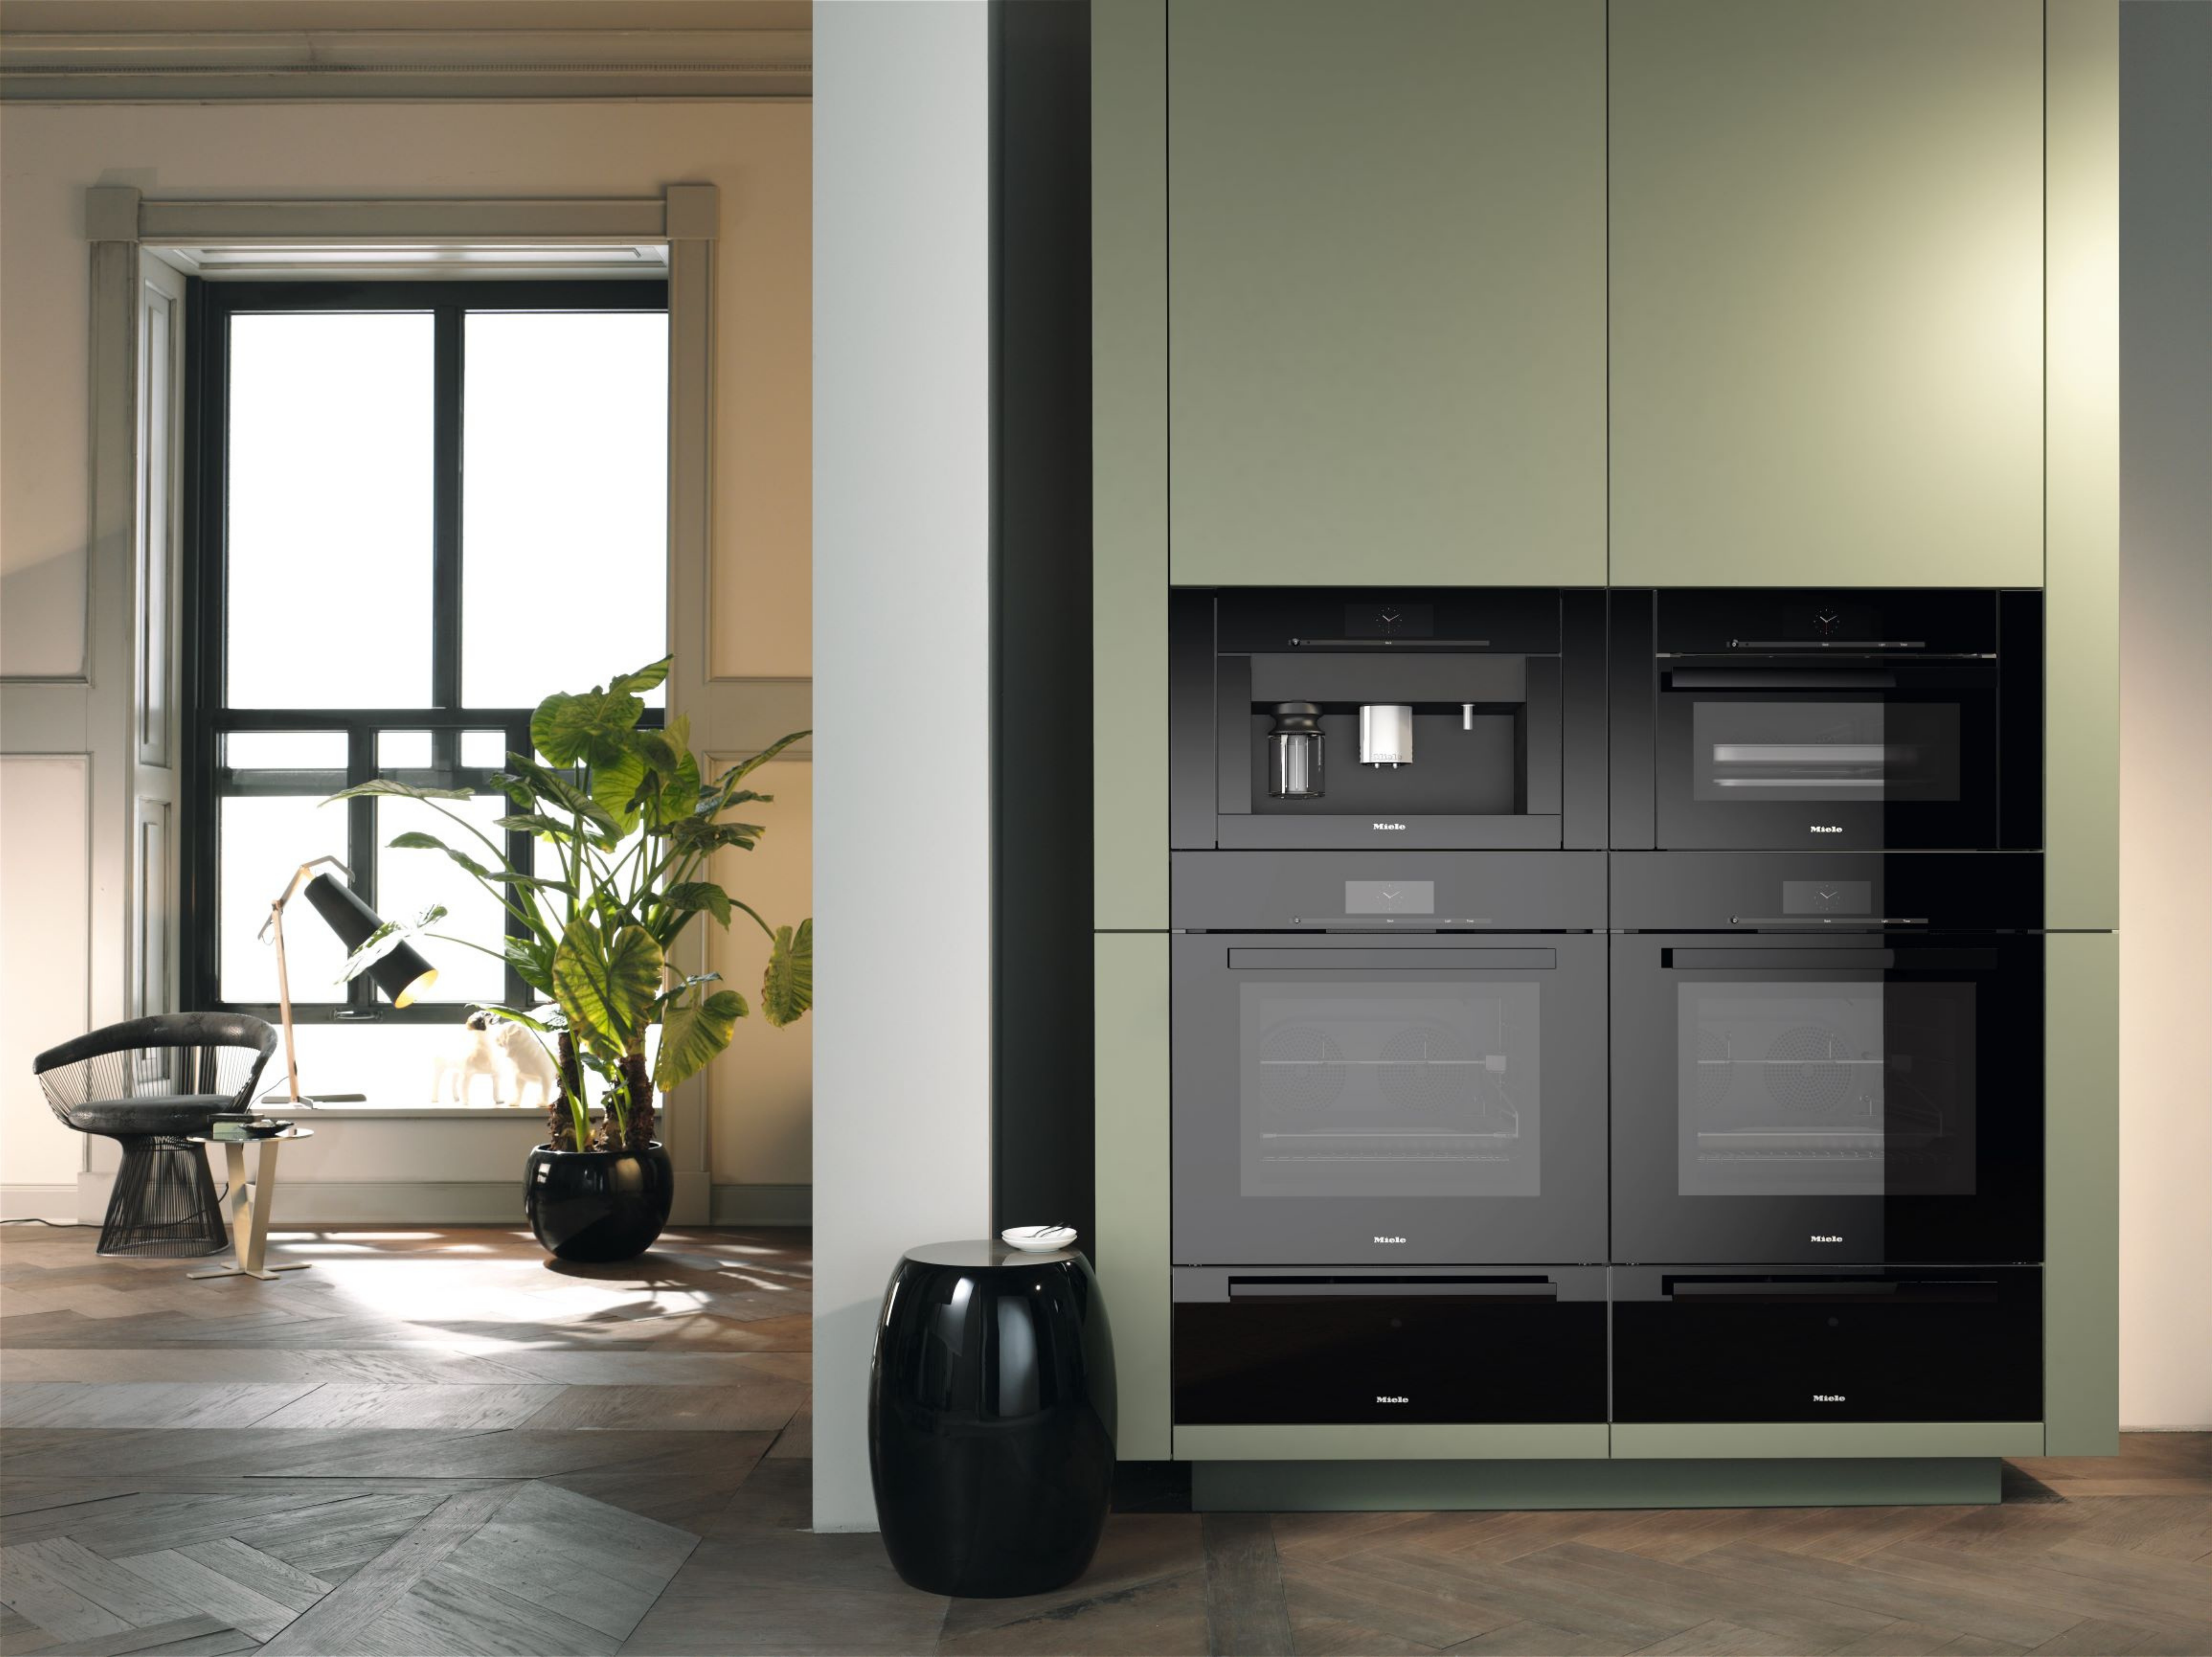 01_Miele_Go_Green_Lifestyle_Image.png